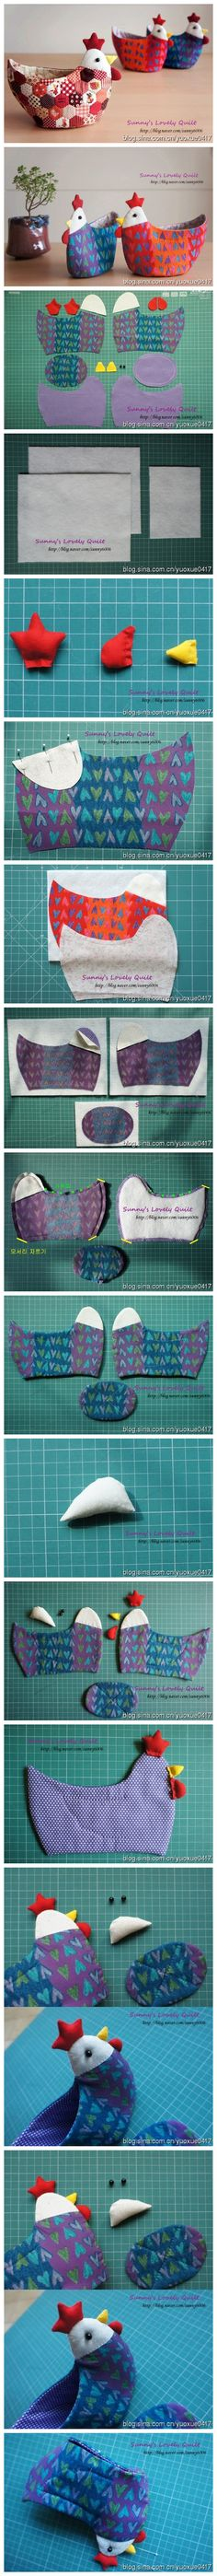 chicken fabric basket